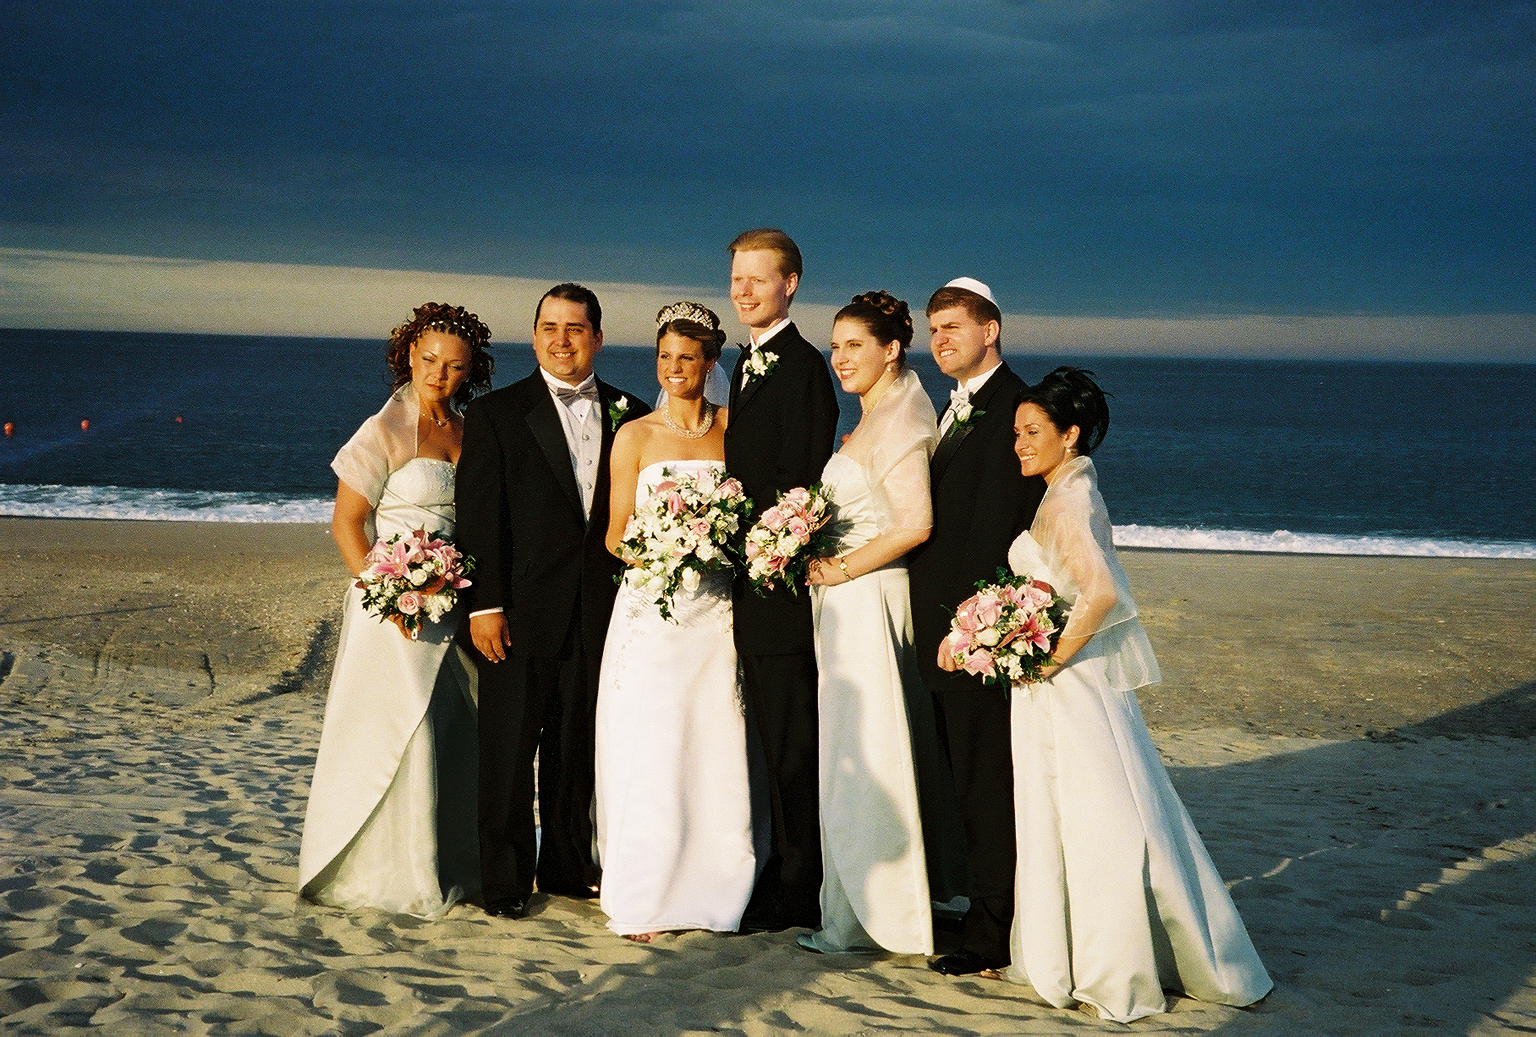 EE_Wedding-C-14.jpg